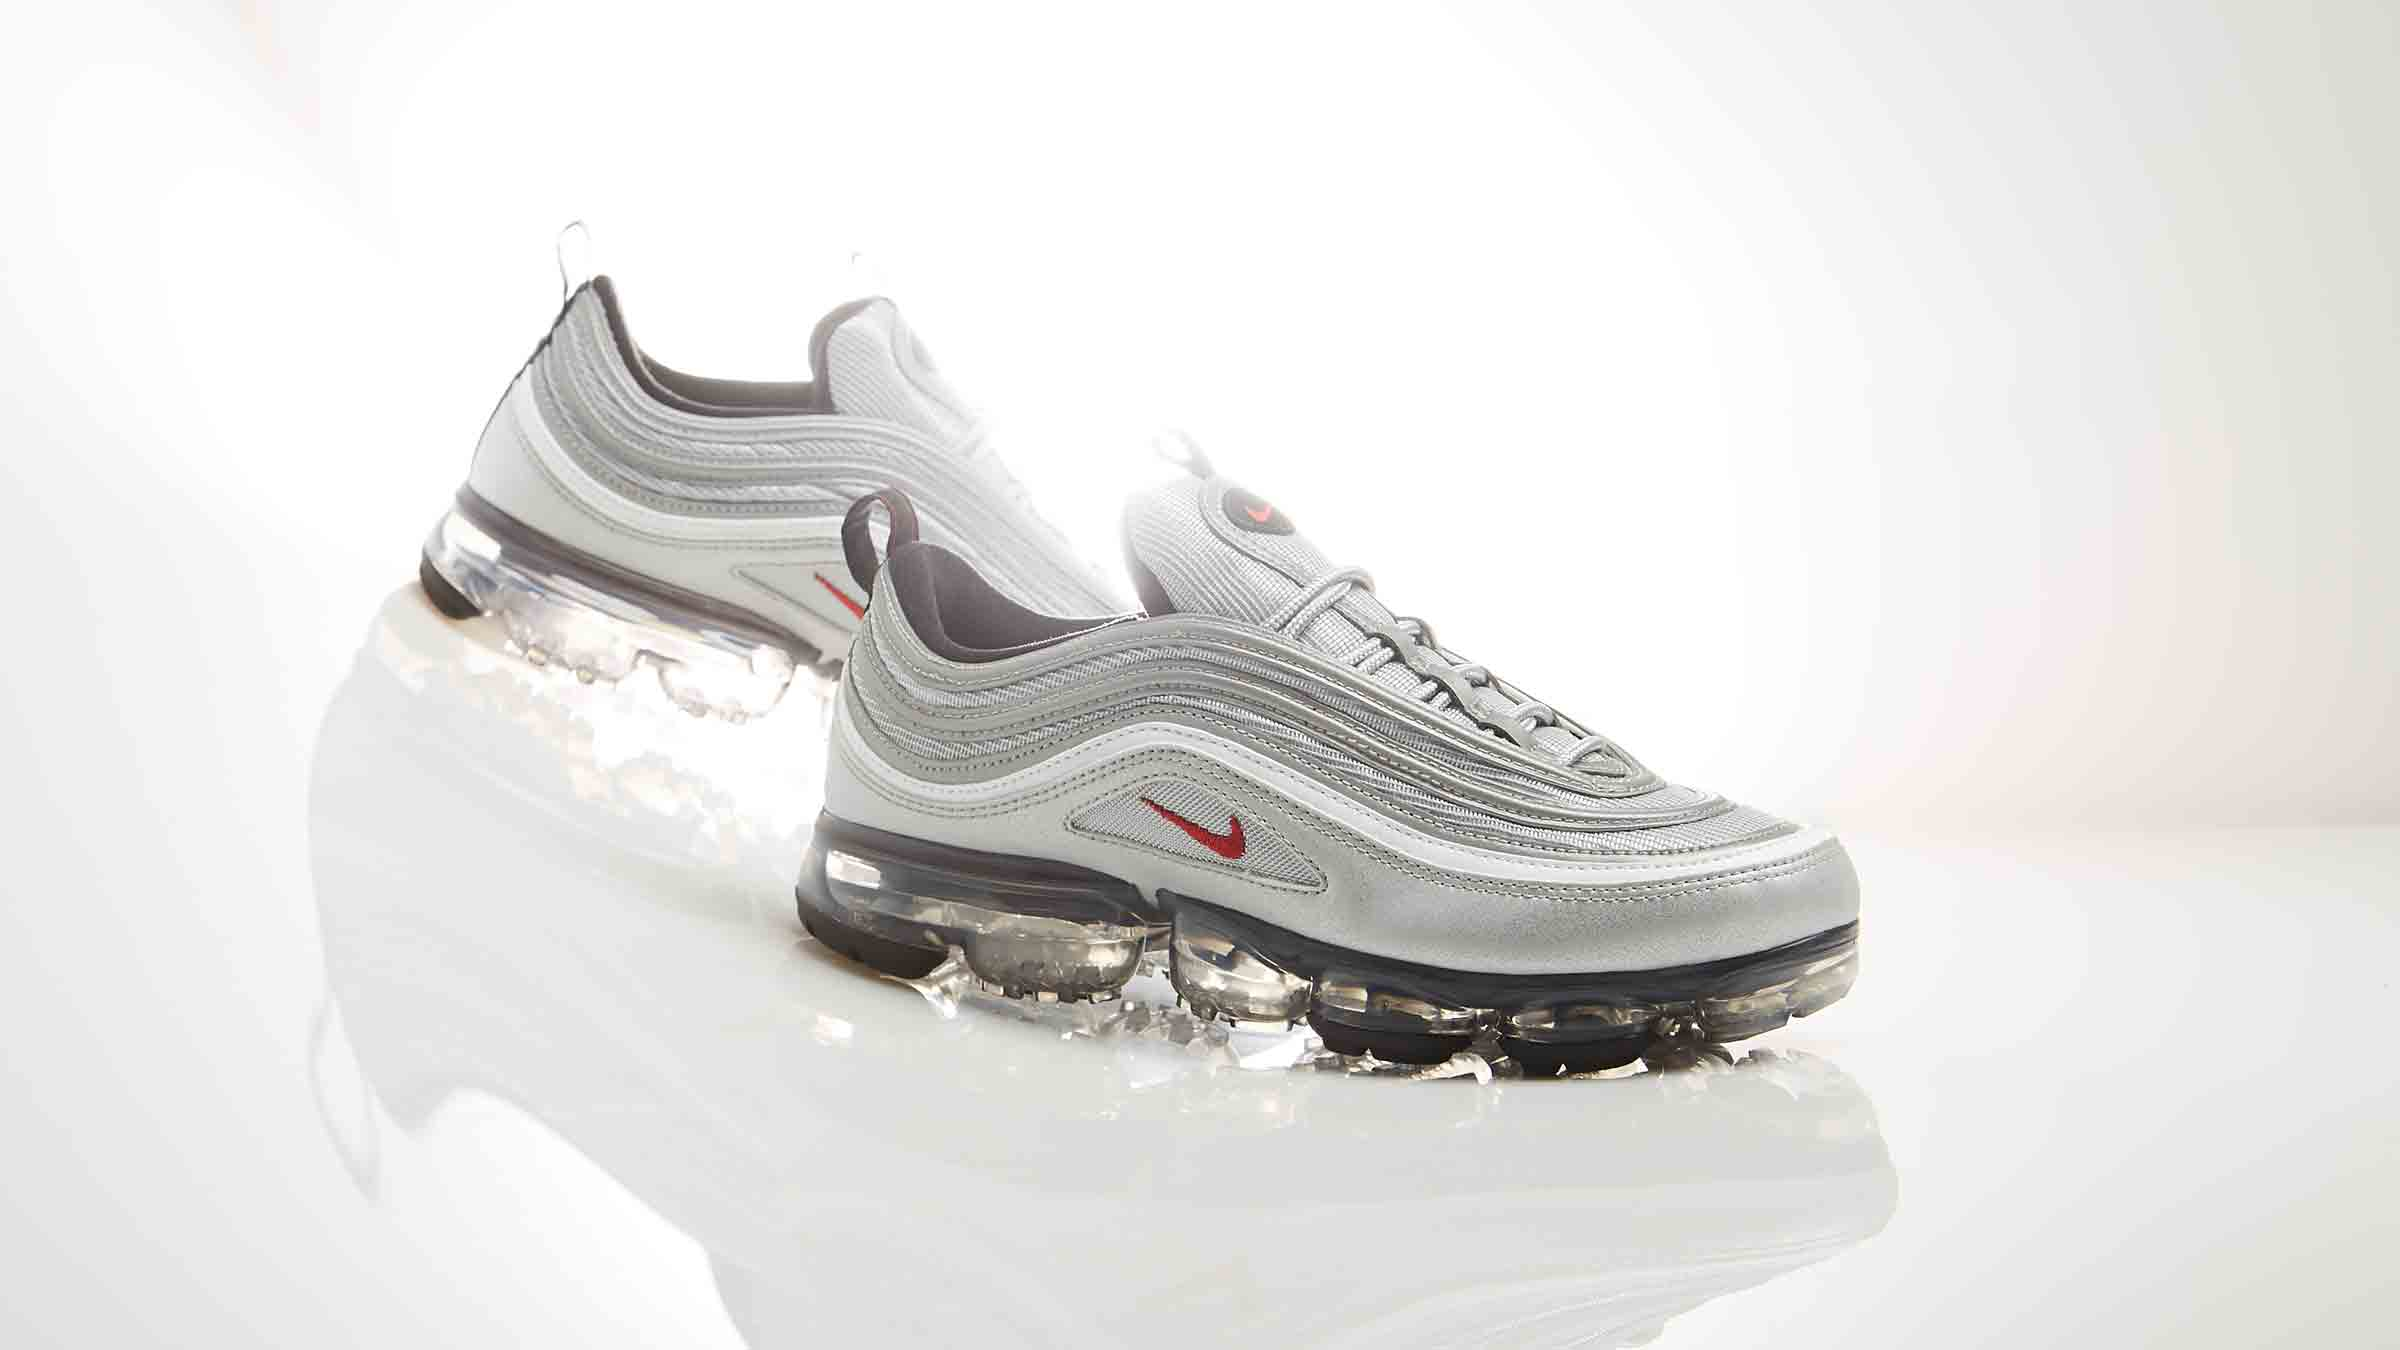 quality design 117d4 1dc11 END. Features | Nike Air Vapormax 97 'Silver Bullet ...